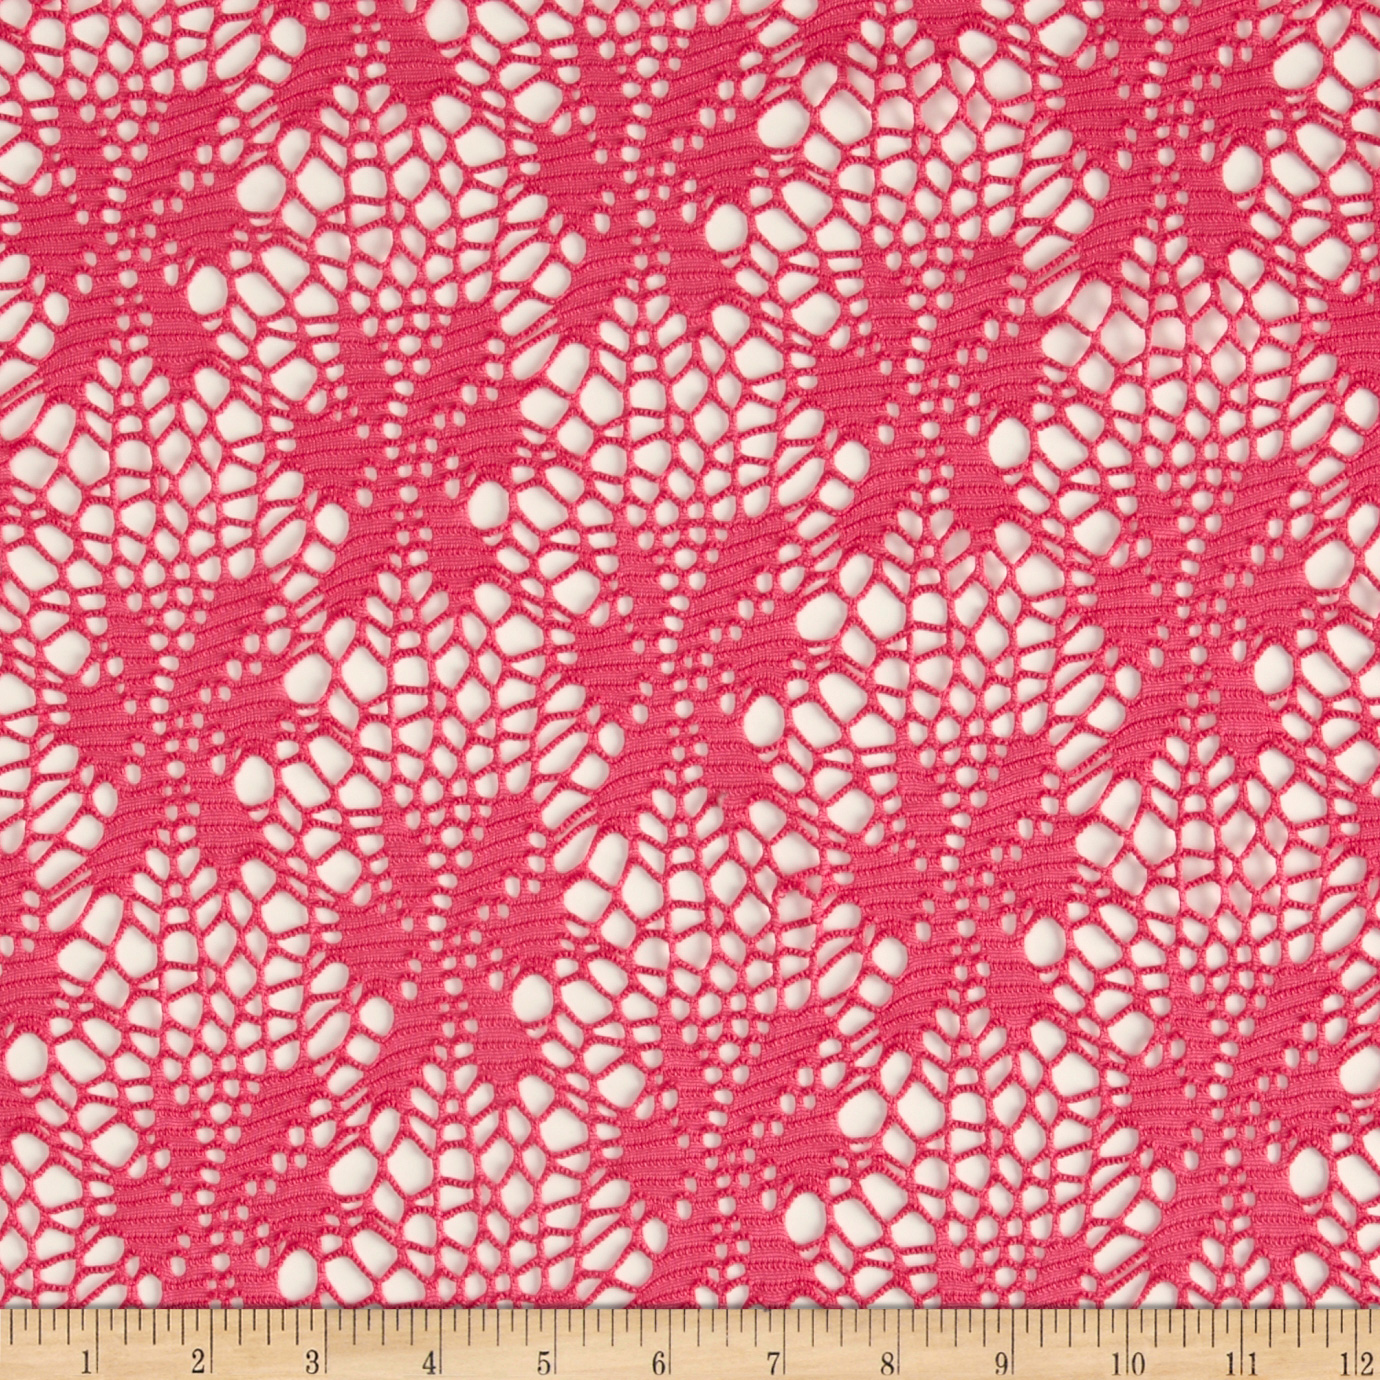 Floral Crochet Lace Hot Pink